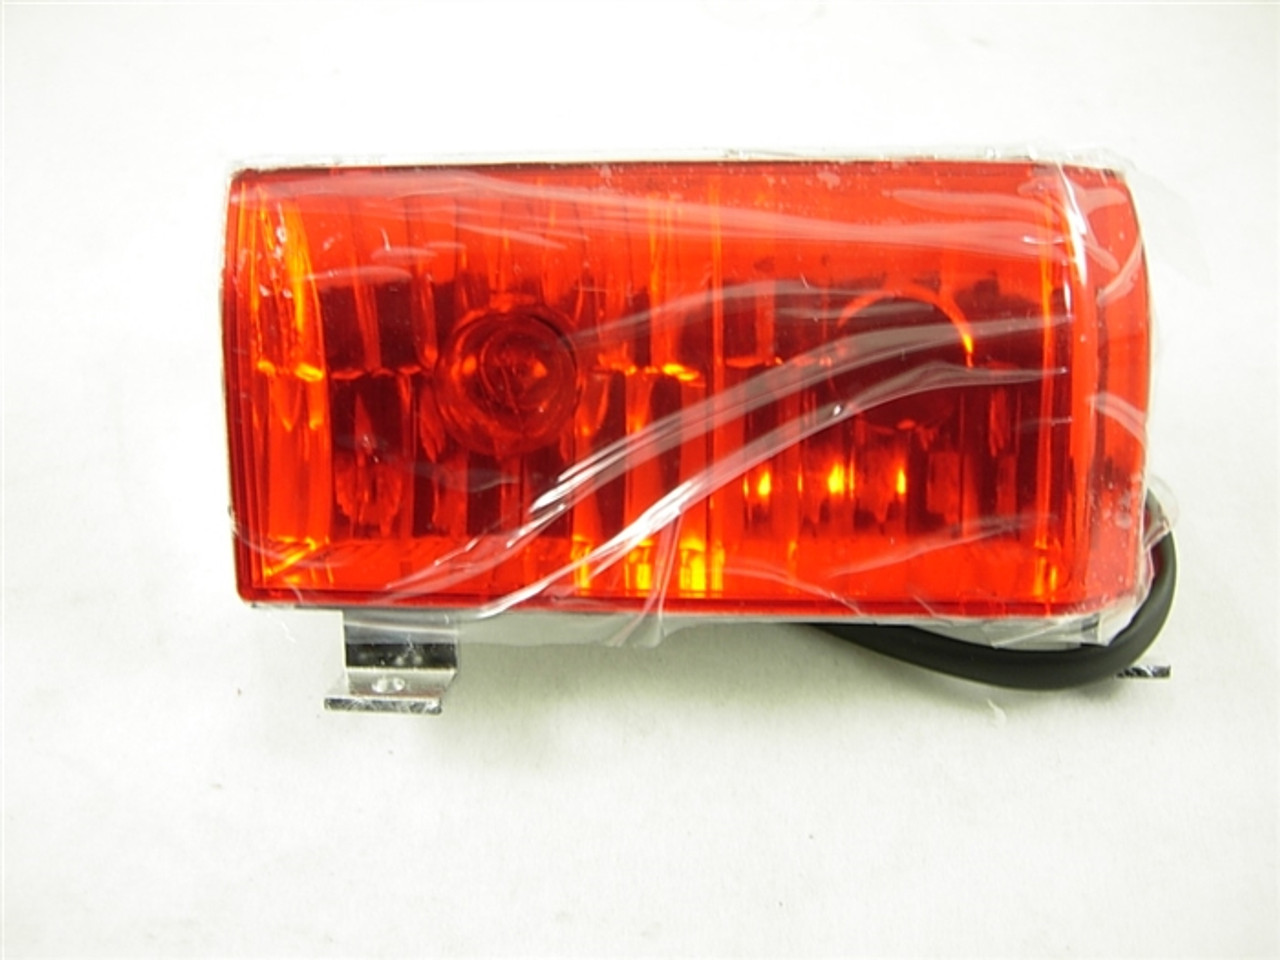 TAIL LIGHT (RIGHT SIDE) 13370-A188-4